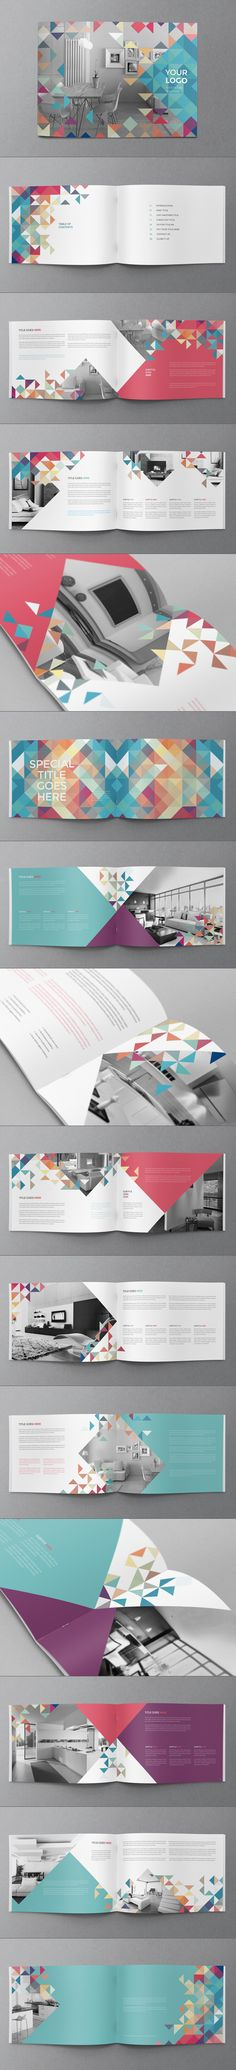 Minimal Colorful Brochure on Behance